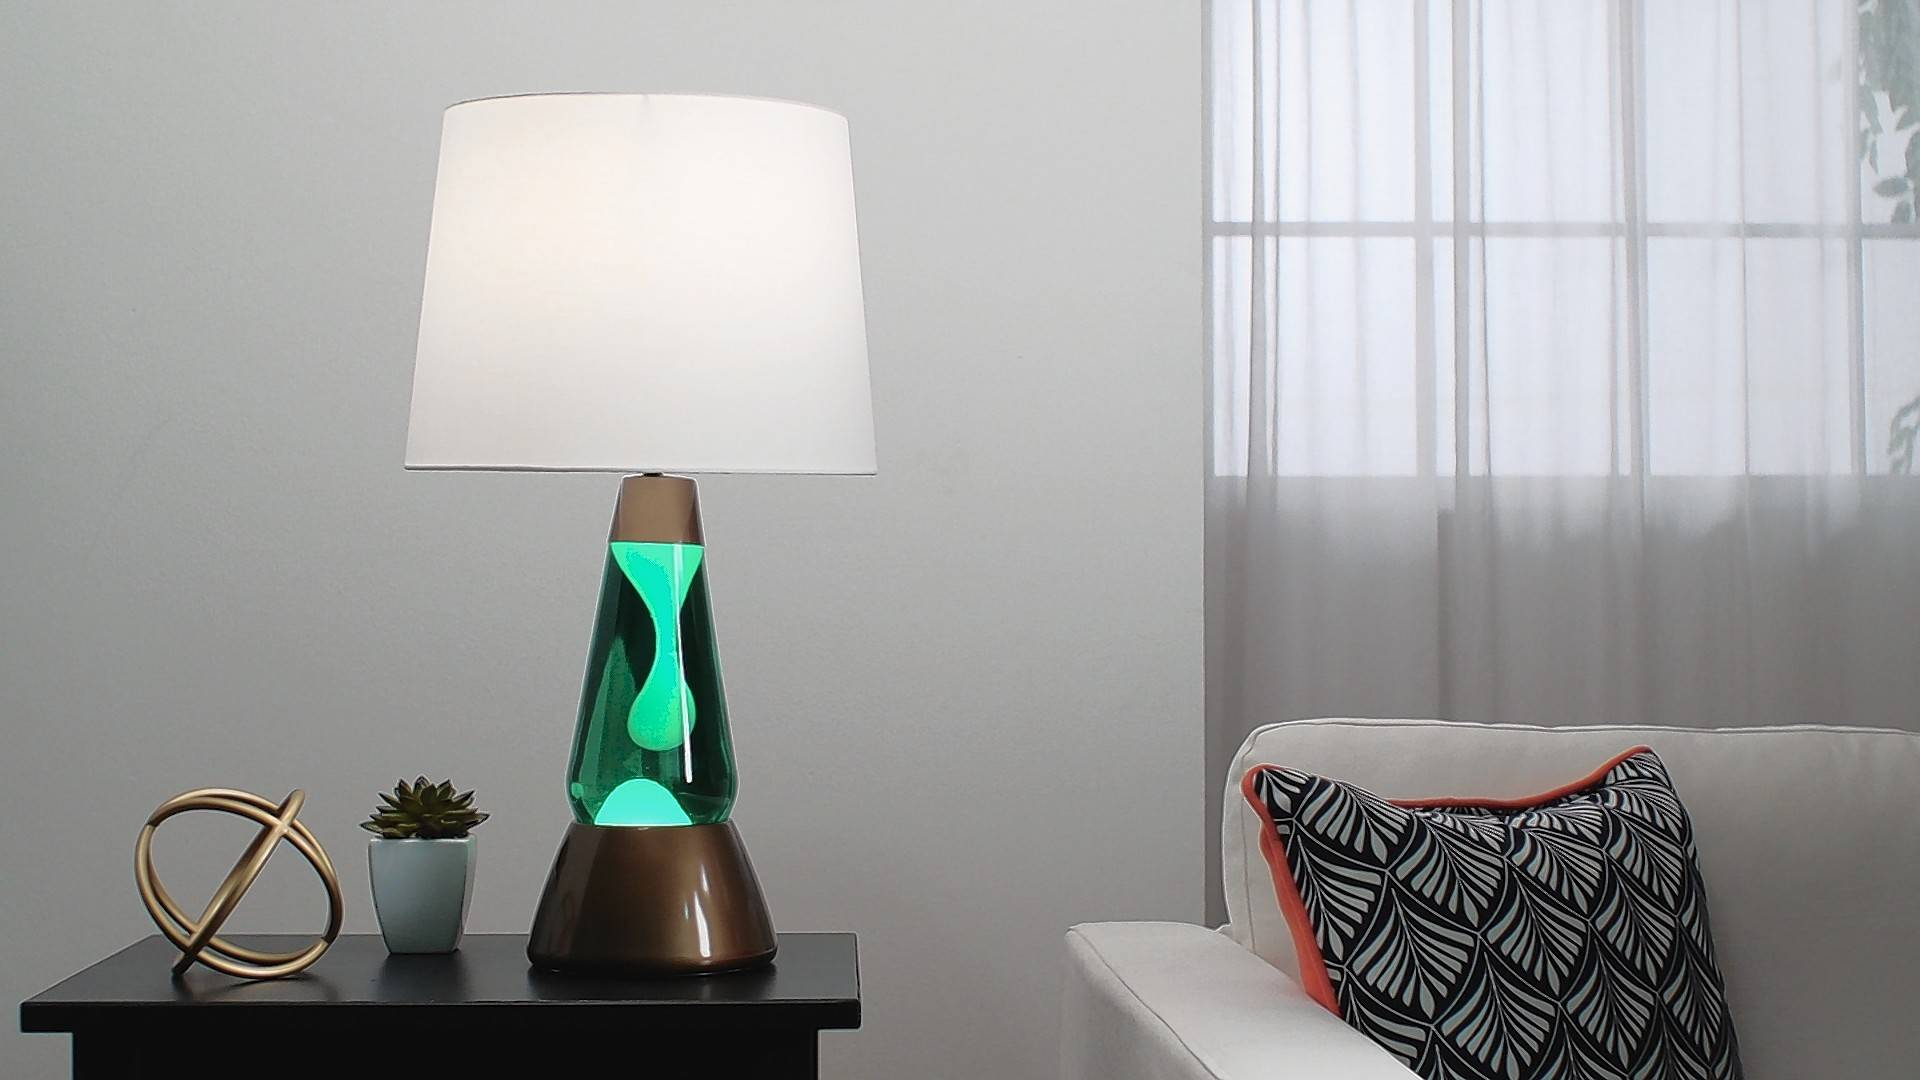 comtemporary lighting wall mounted bright source lamps combine conventional table lamp with lava lamp lava maker expands into contemporary lighting